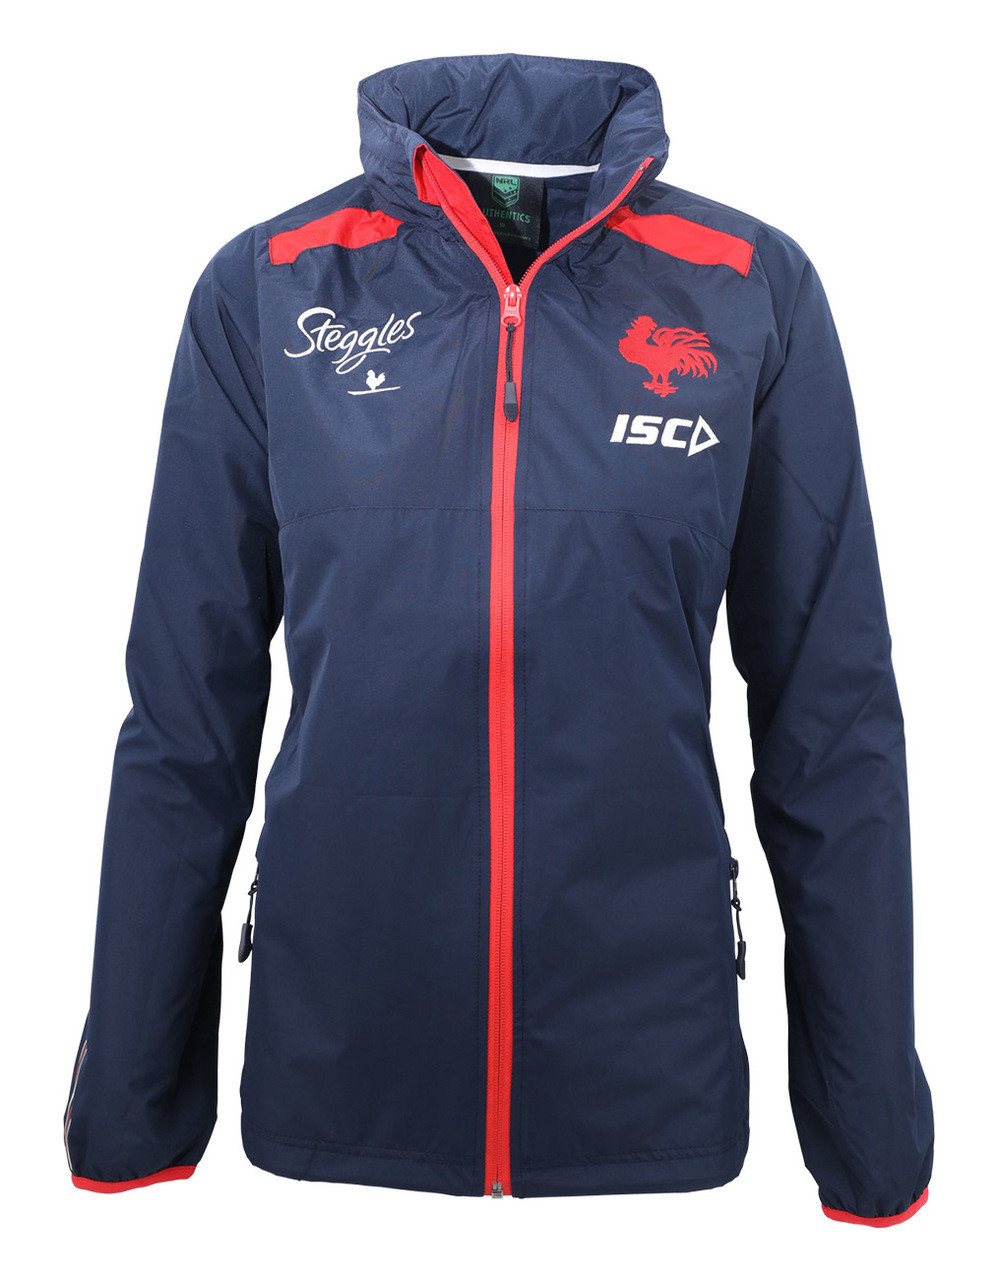 7b60db1b8 Sydney Roosters 2019 ISC Womens Wet Weather Jacket - Roosters Shop